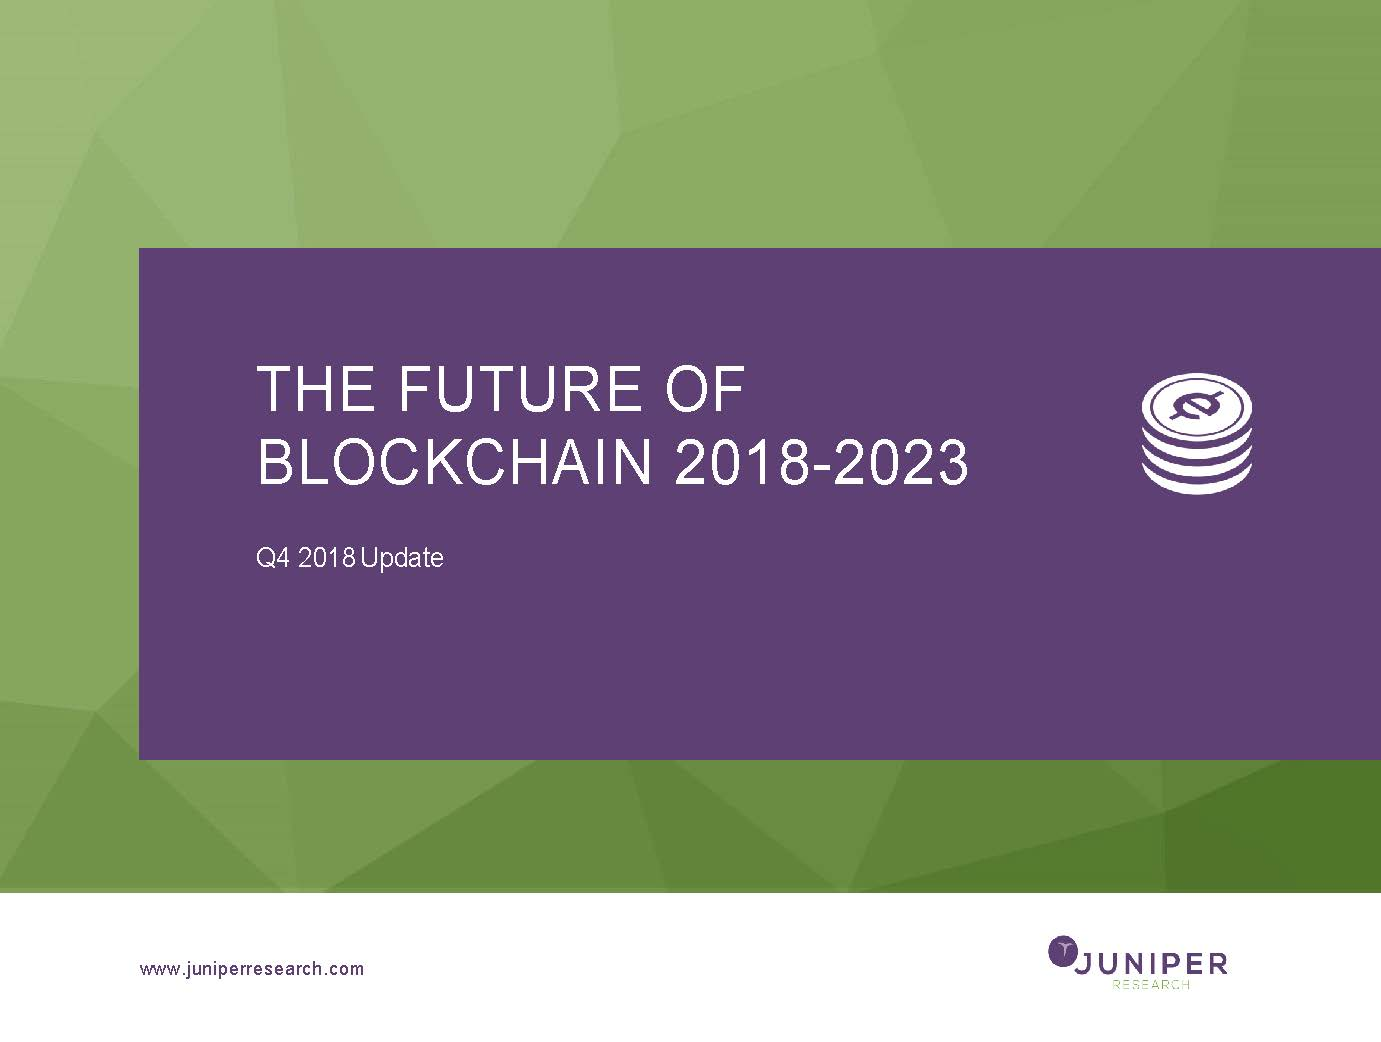 The Future of Blockchain - Q4 2018